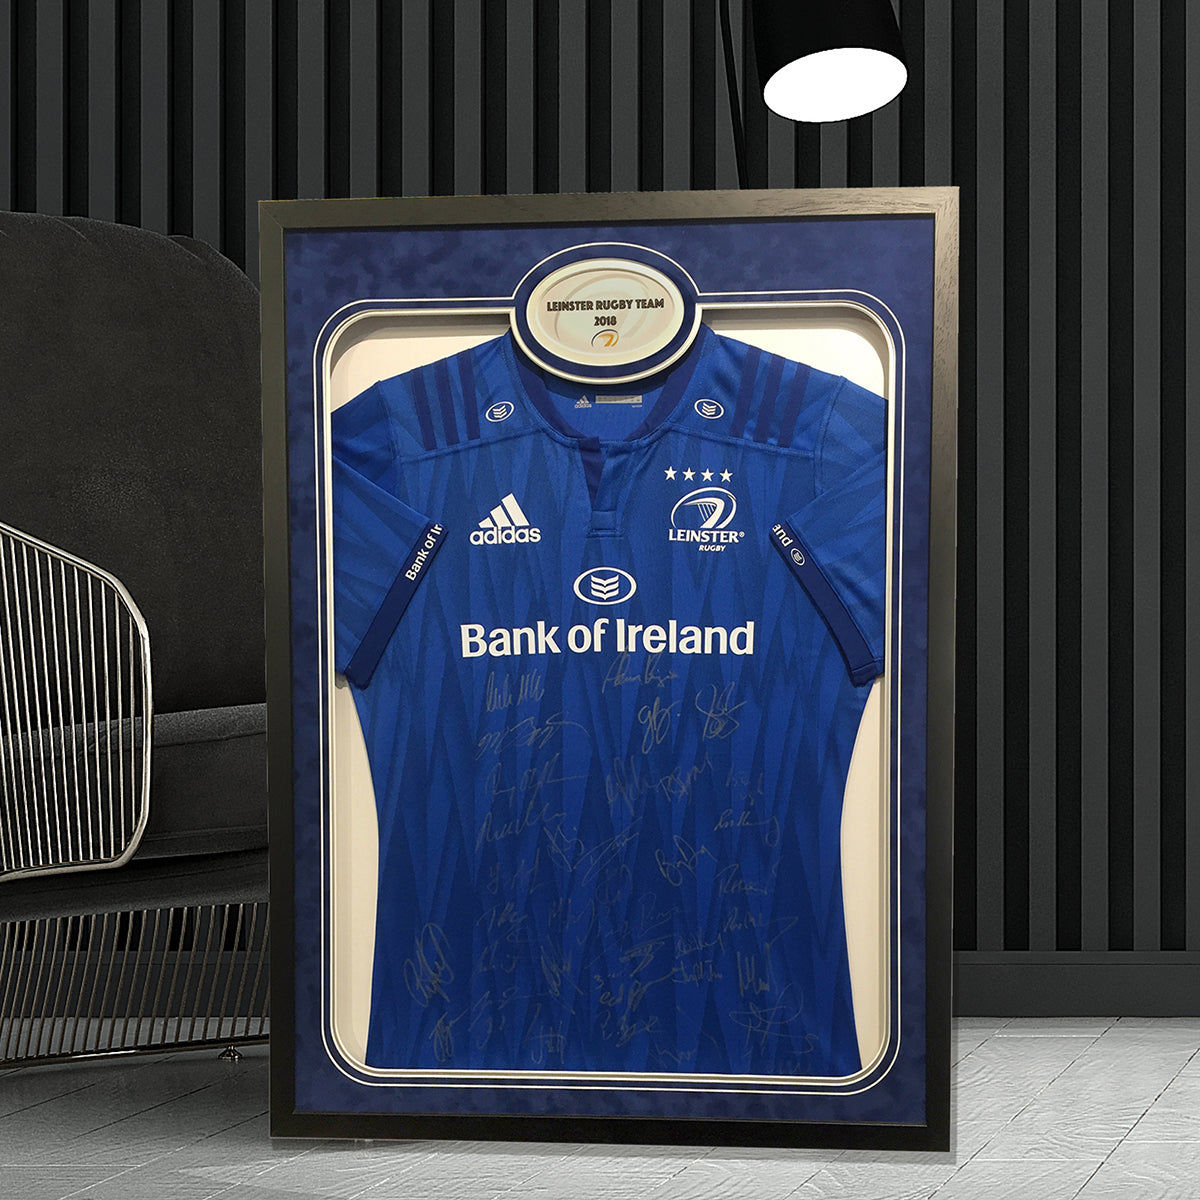 Leinster signed Rugby Jersey Frame - with neckline graphic